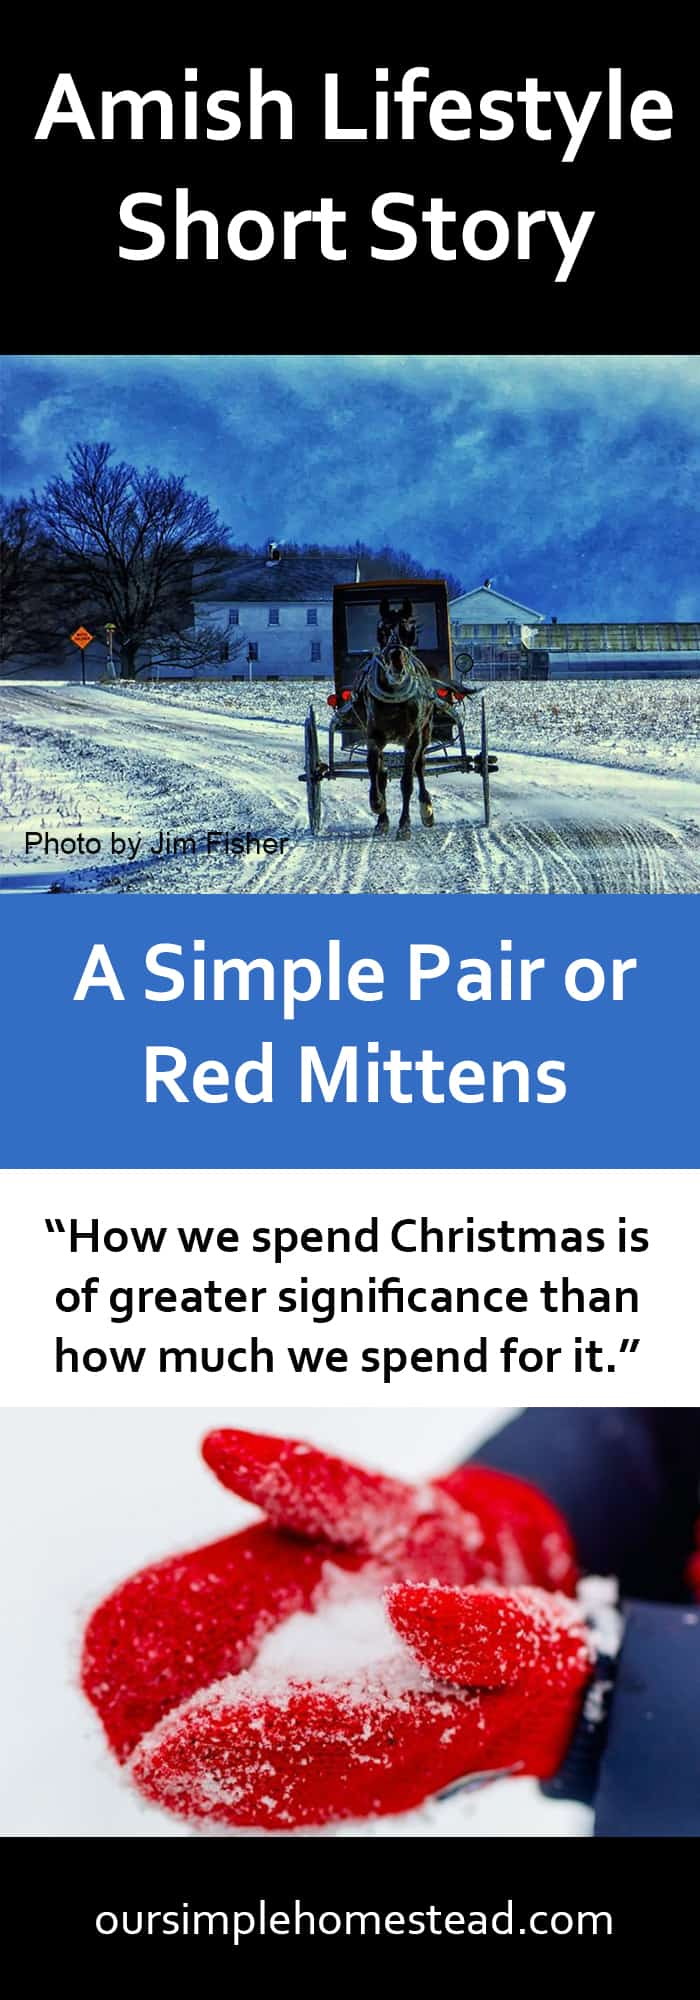 Amish Lifestyle - A Simple Pair of Red MIttens